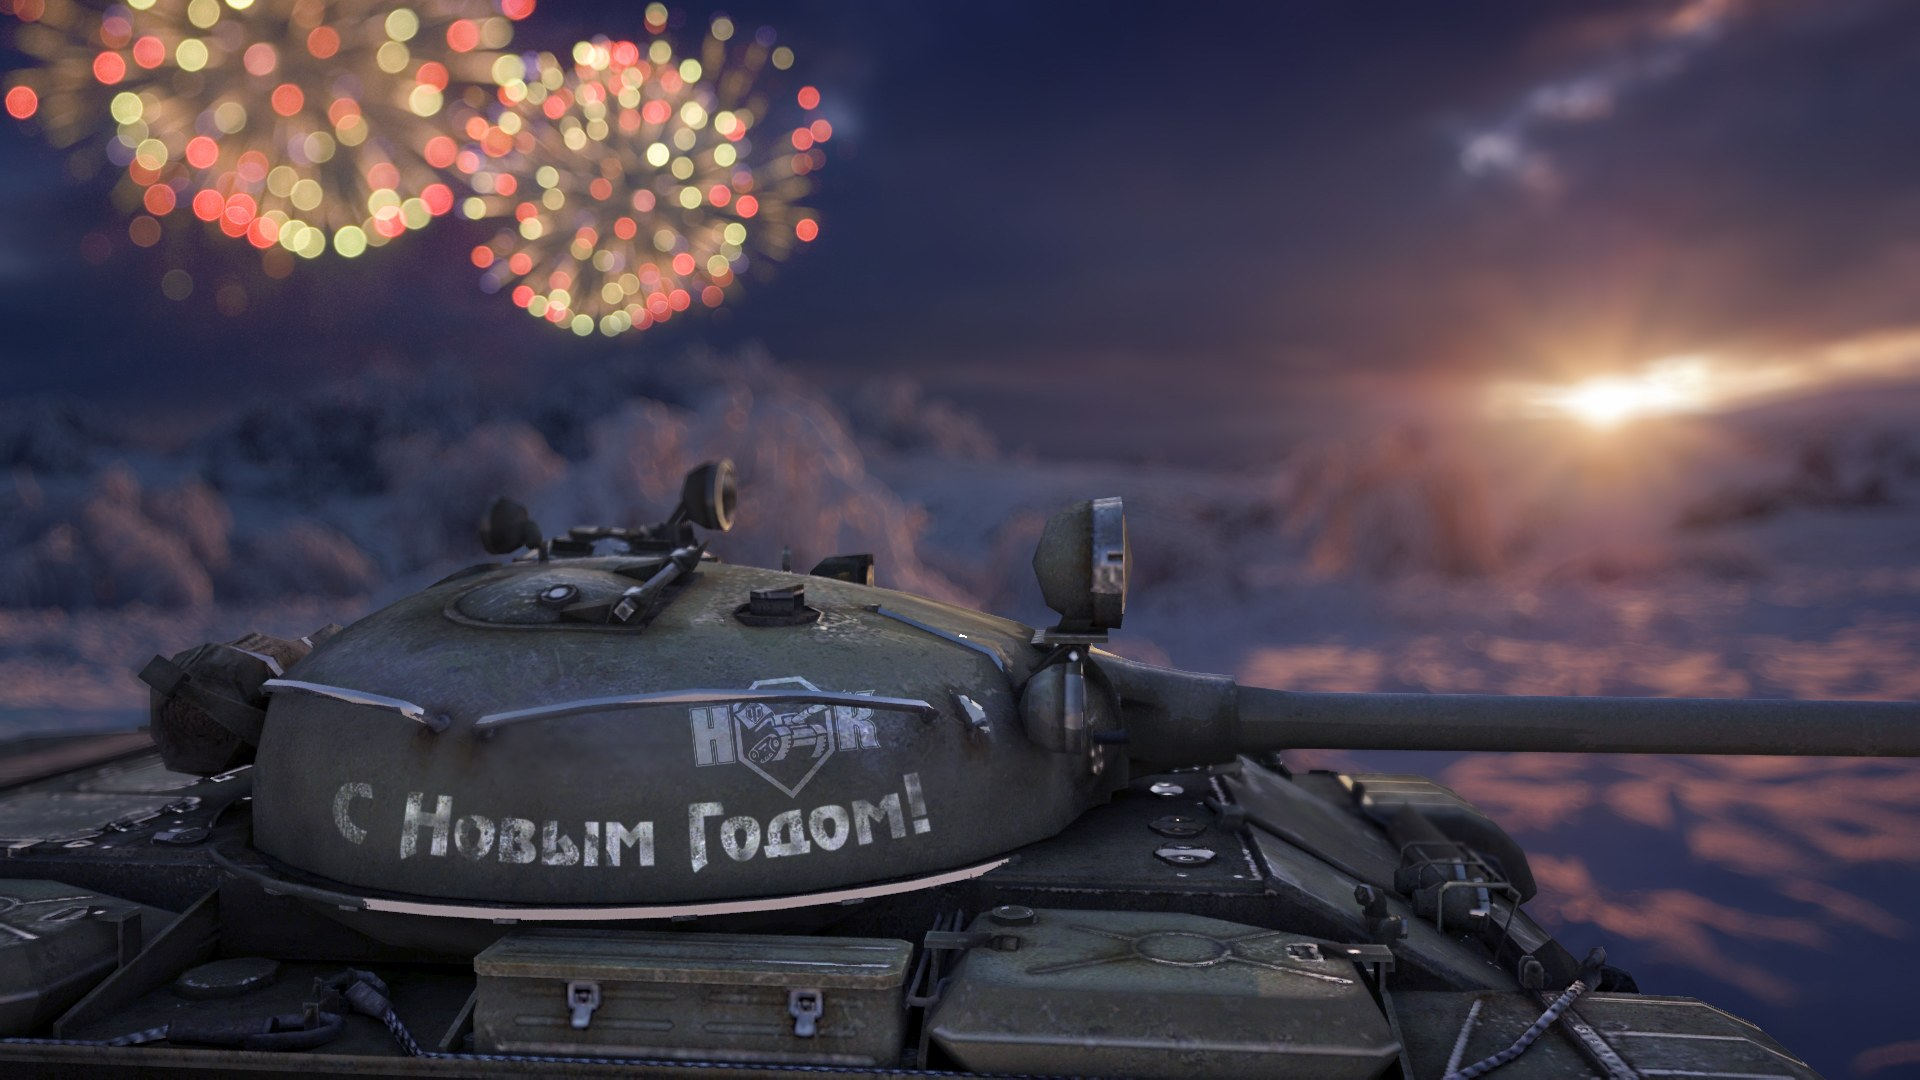 World of Tanks Background Image